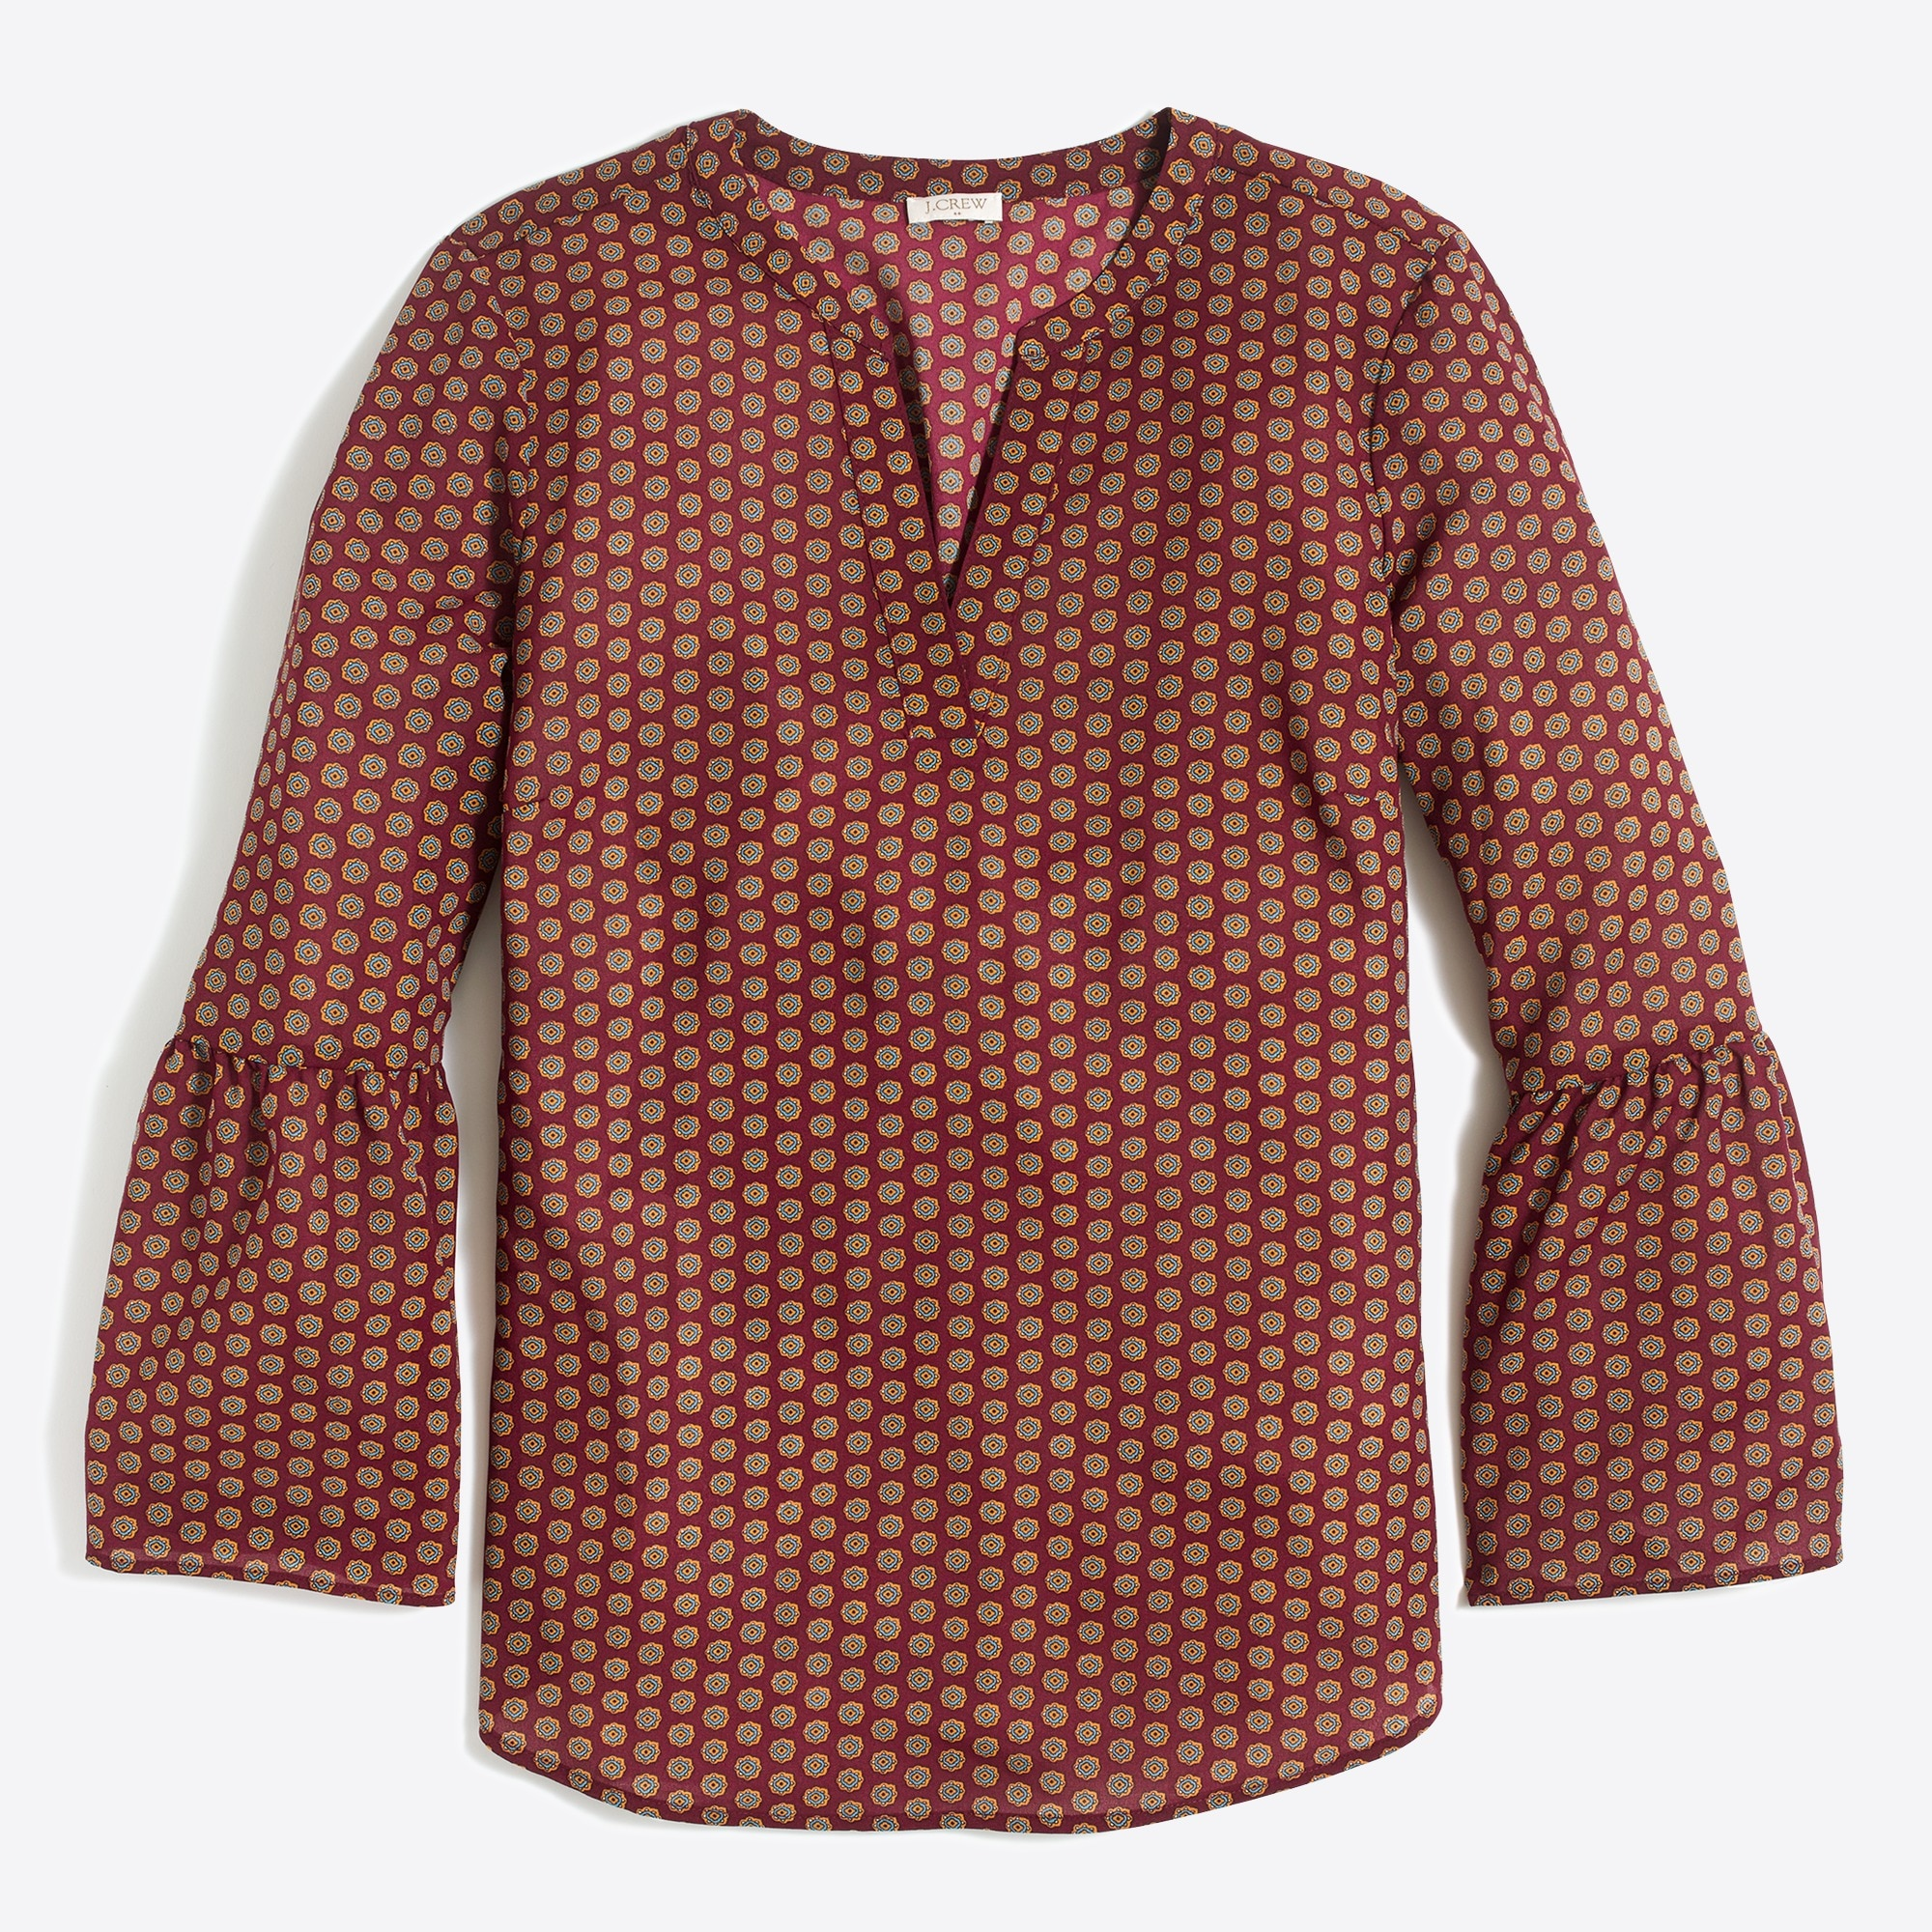 Image 1 for Petite printed bell-sleeve top